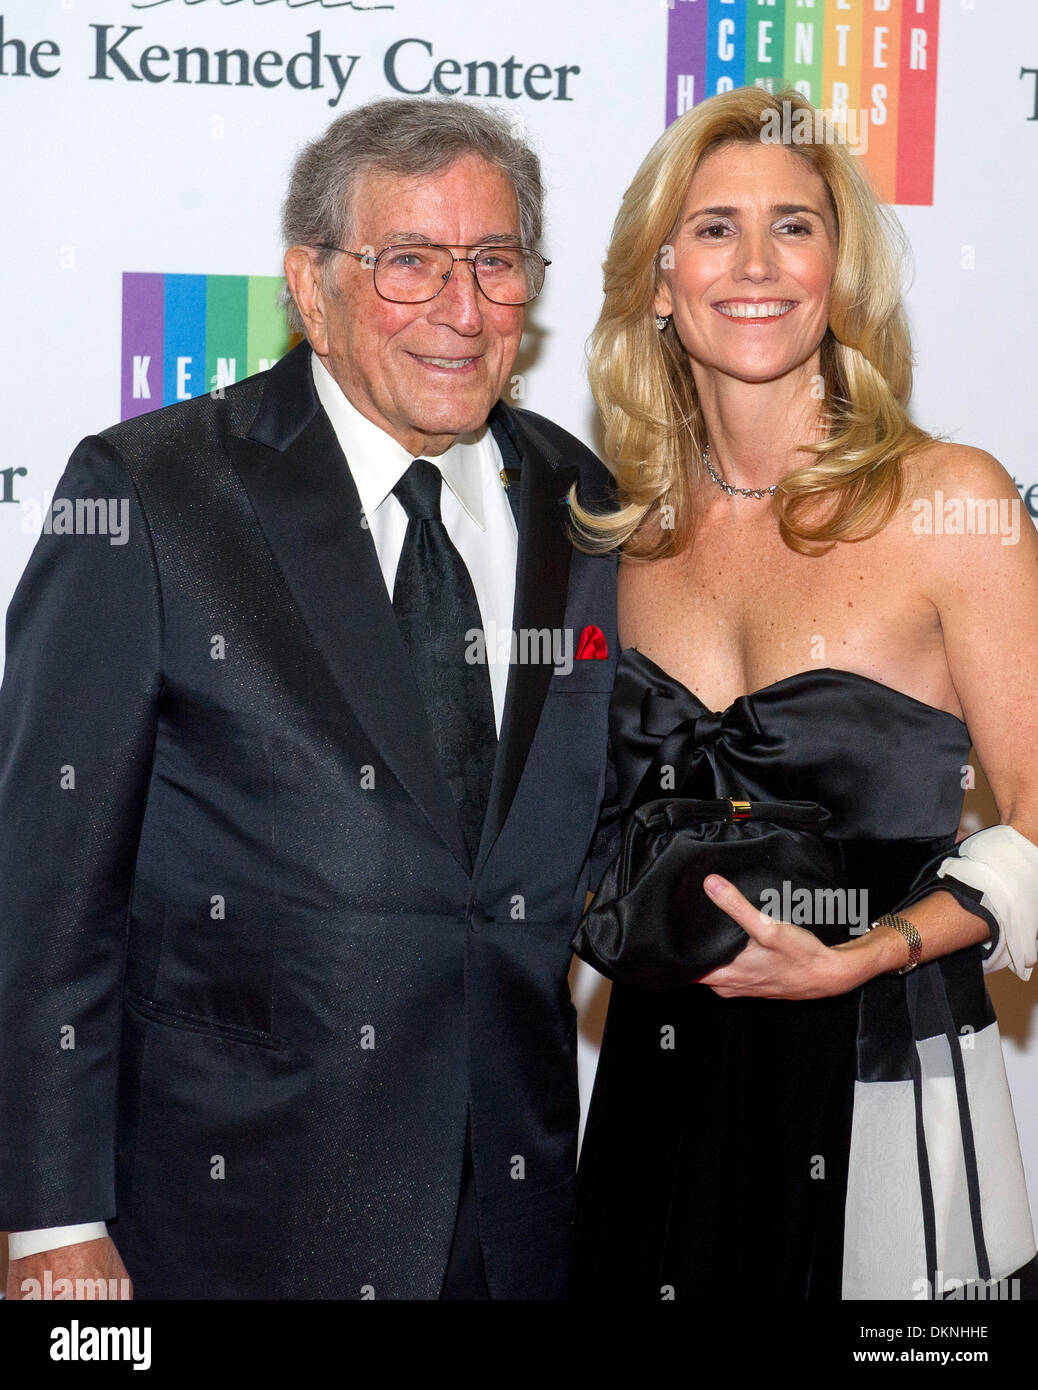 Washington DC, USA. 7th Dec, 2013. Tony Bennett and his wife, Susan Crow, arrive for the formal Artist's Dinner honoring the recipients of the 2013 Kennedy Center Honors hosted by United States Secretary of State John F. Kerry at the U.S. Department of State in Washington DC, USA, 7 December 2013. Photo: Ron Sachs / CNP/dpa/Alamy Live News - Stock Image